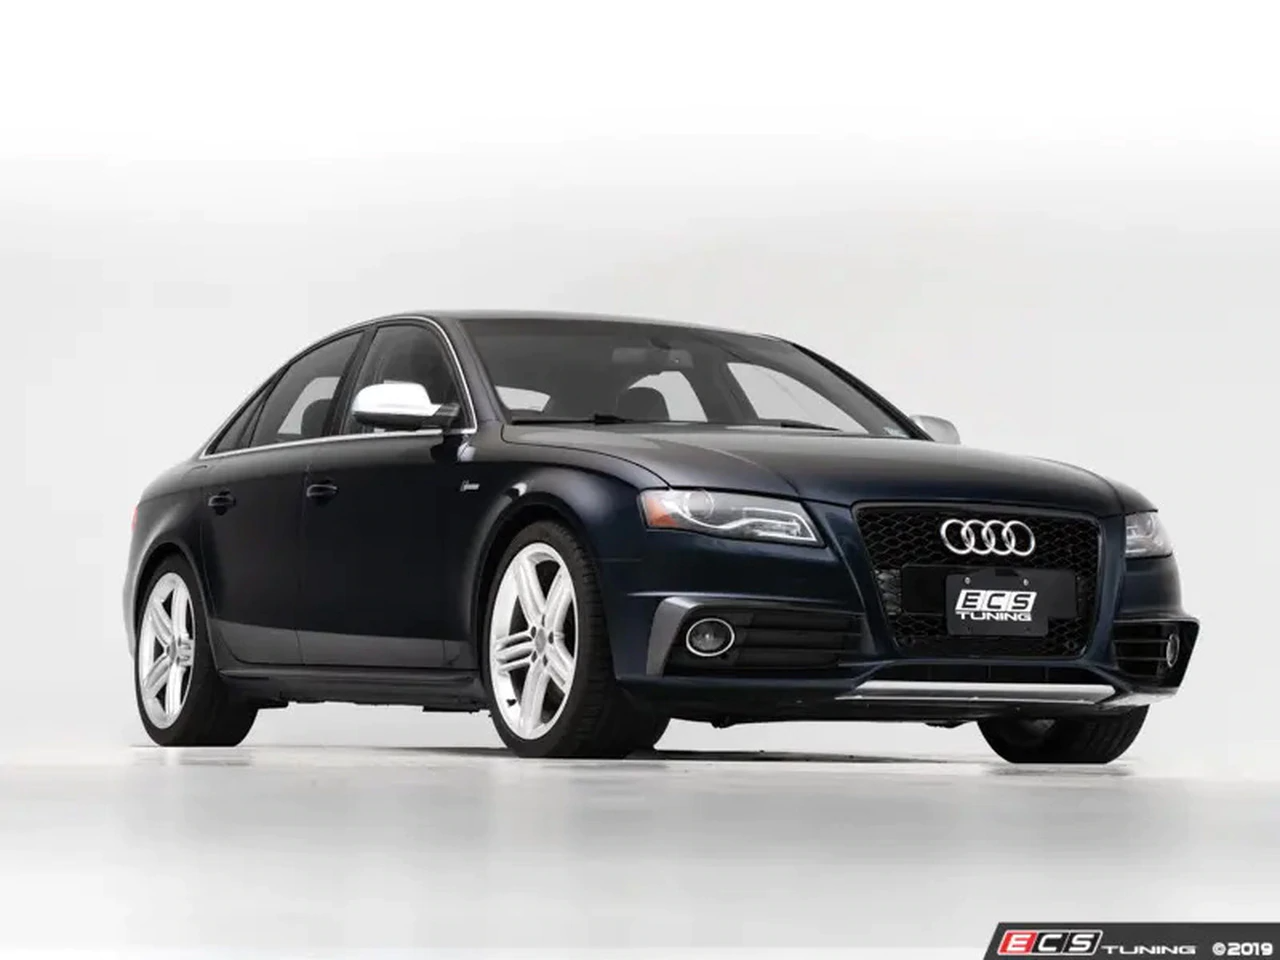 ECS Tuning Gloss Black Grille Accent Kit - A4/S4 B8 Pre Facelift